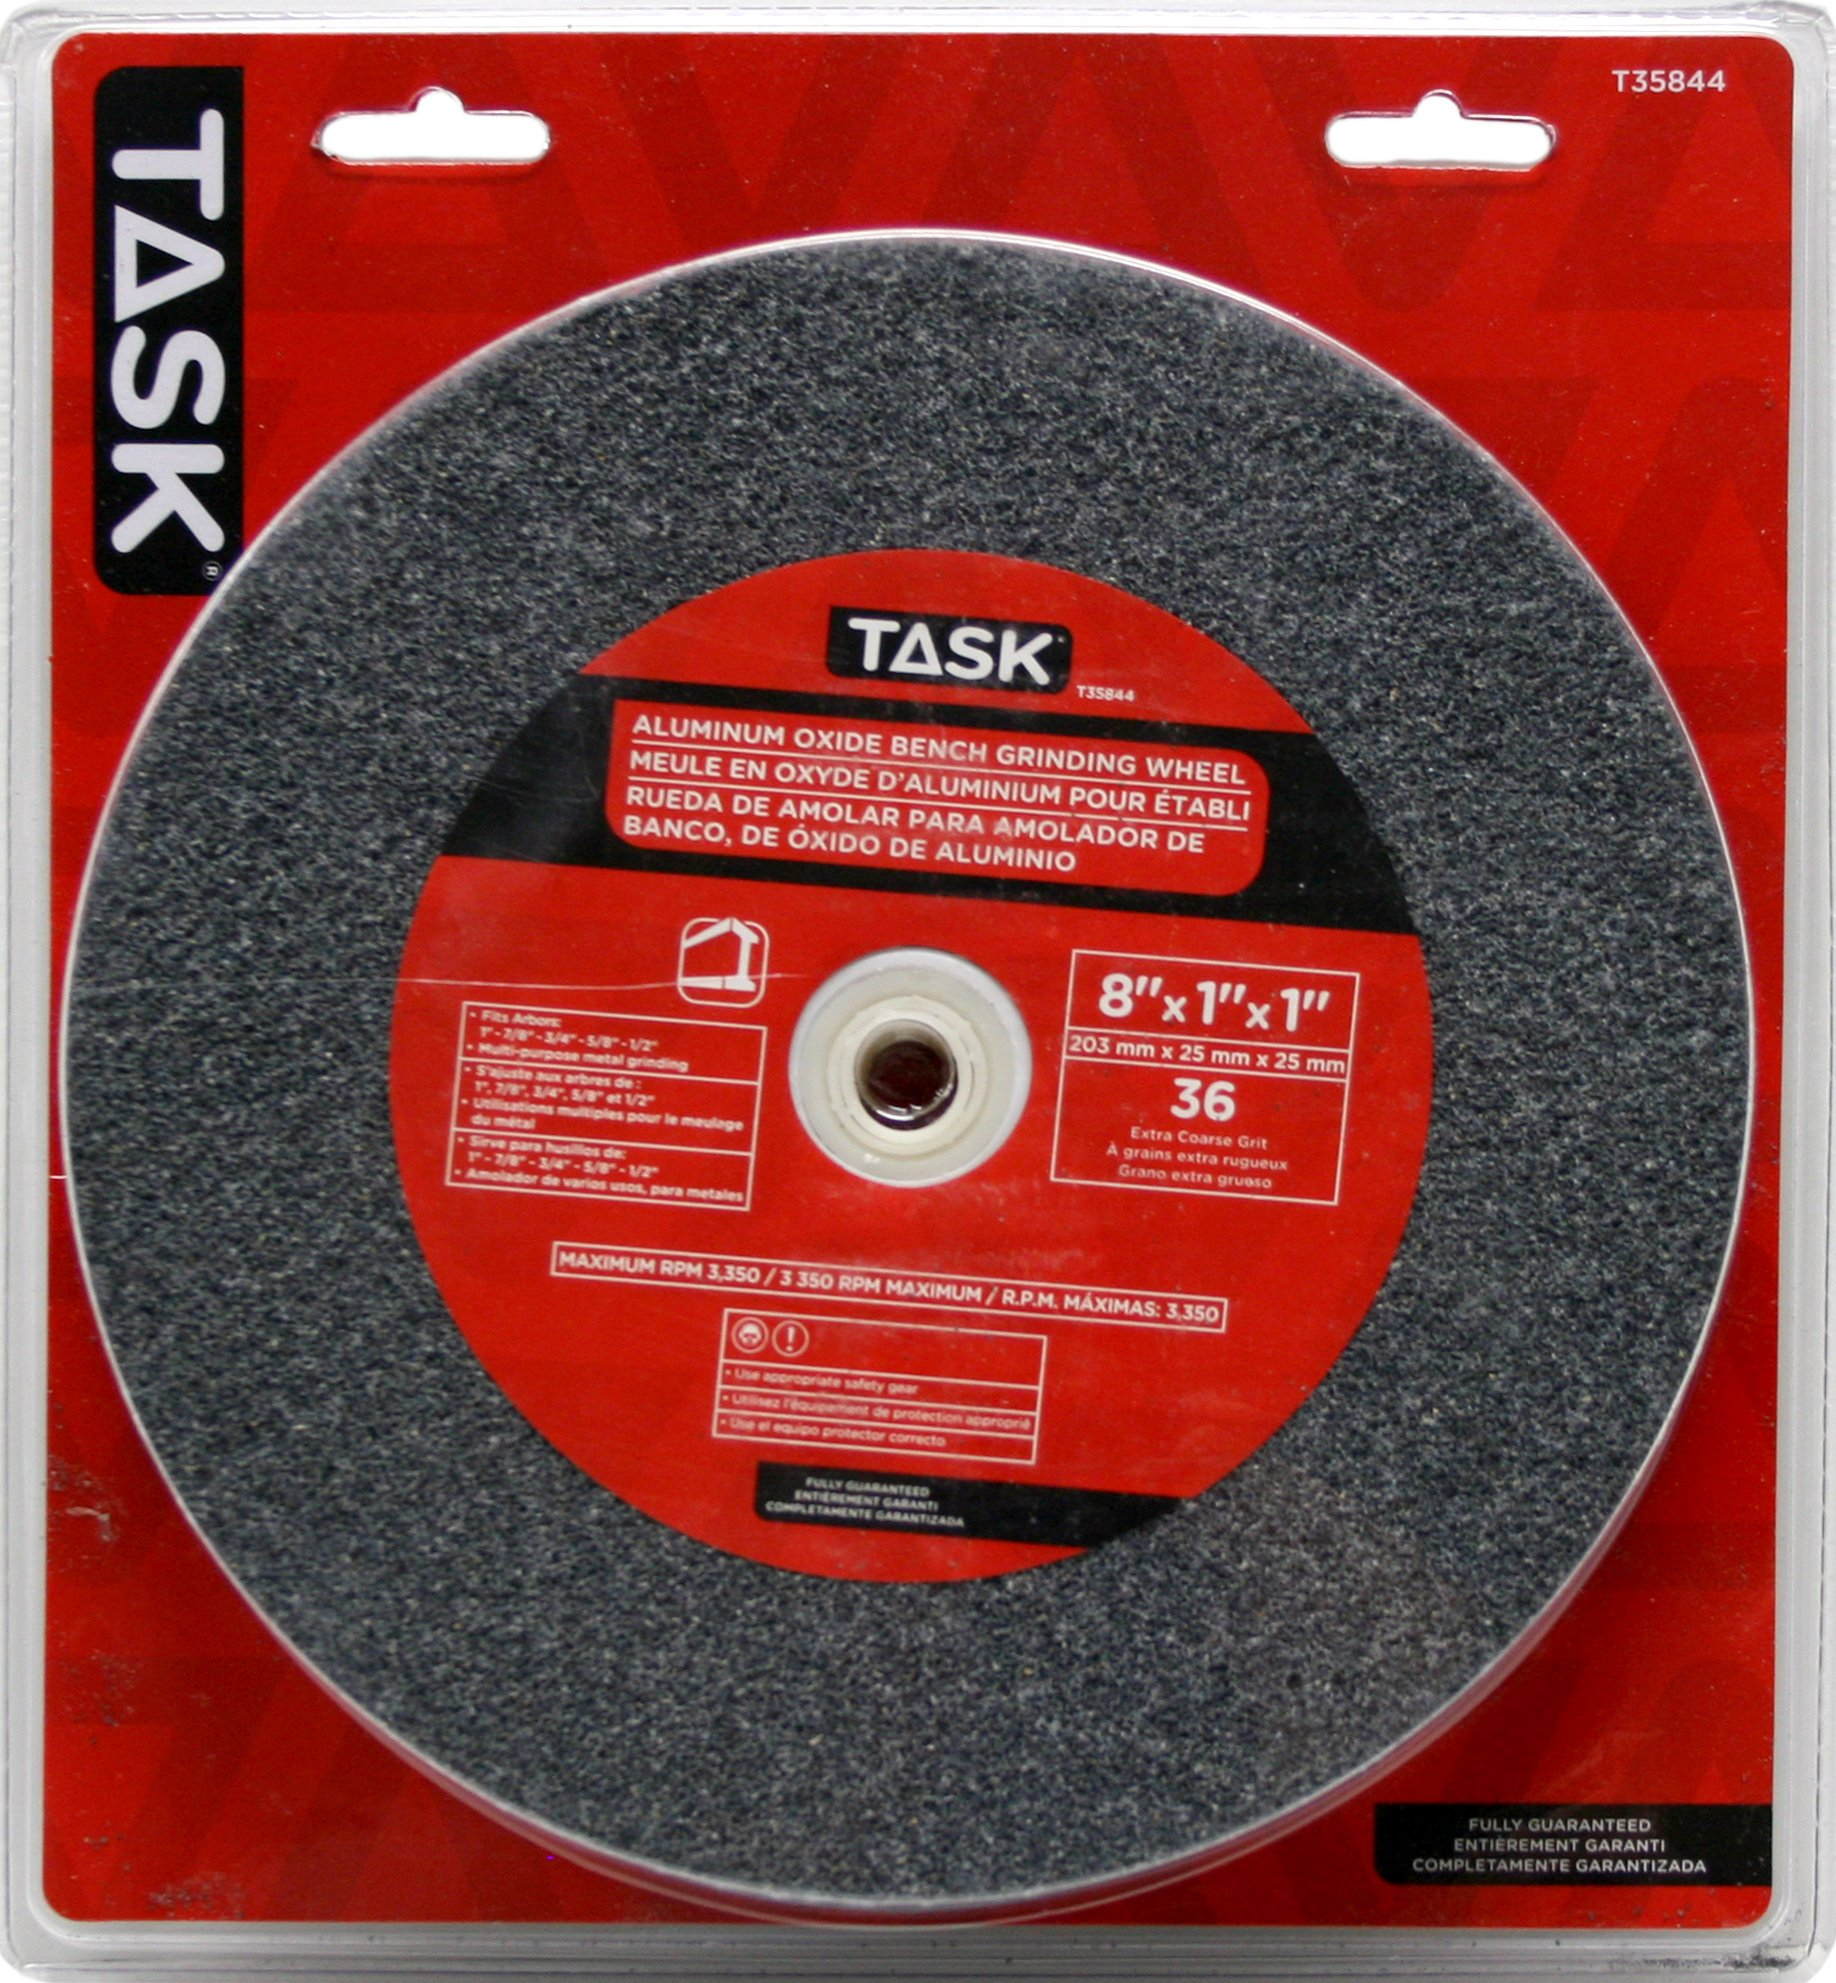 Task Tools T35844 8-Inch by 1-Inch Aluminum Oxide Bench Grinding Wheel, 36 Grit, 1-Inch Arbor